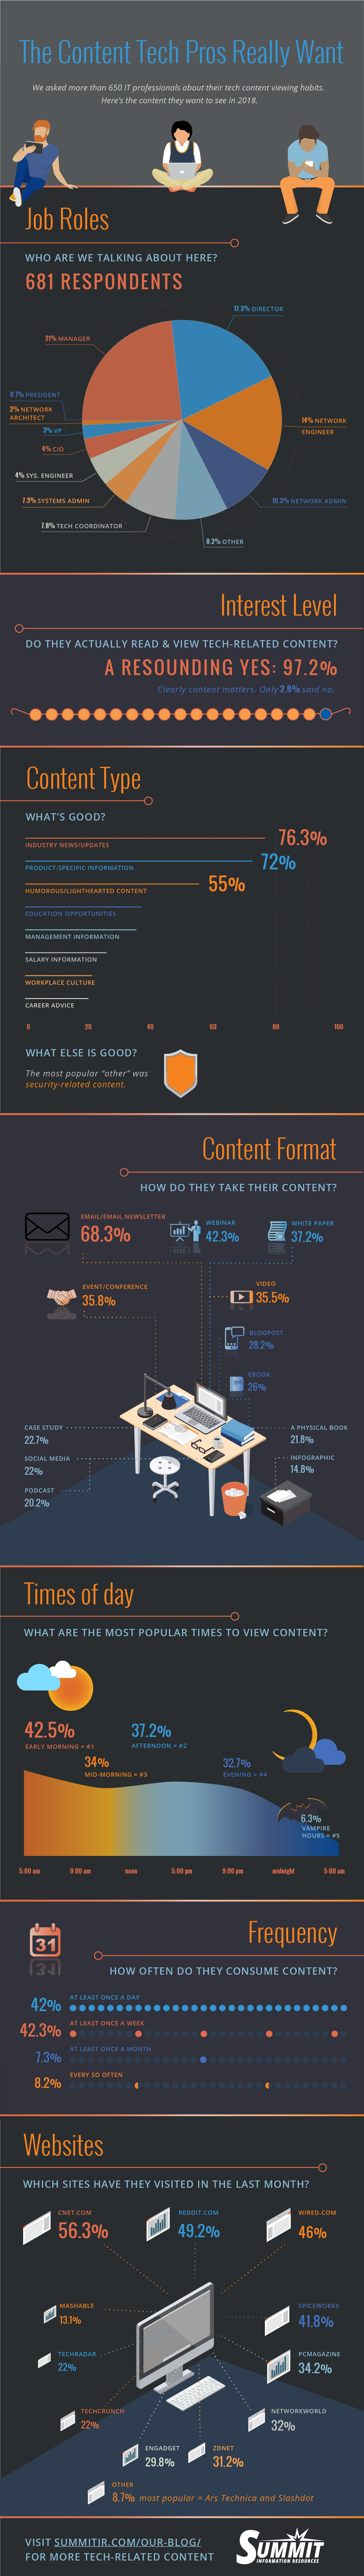 Survey results tech content preferences infographic